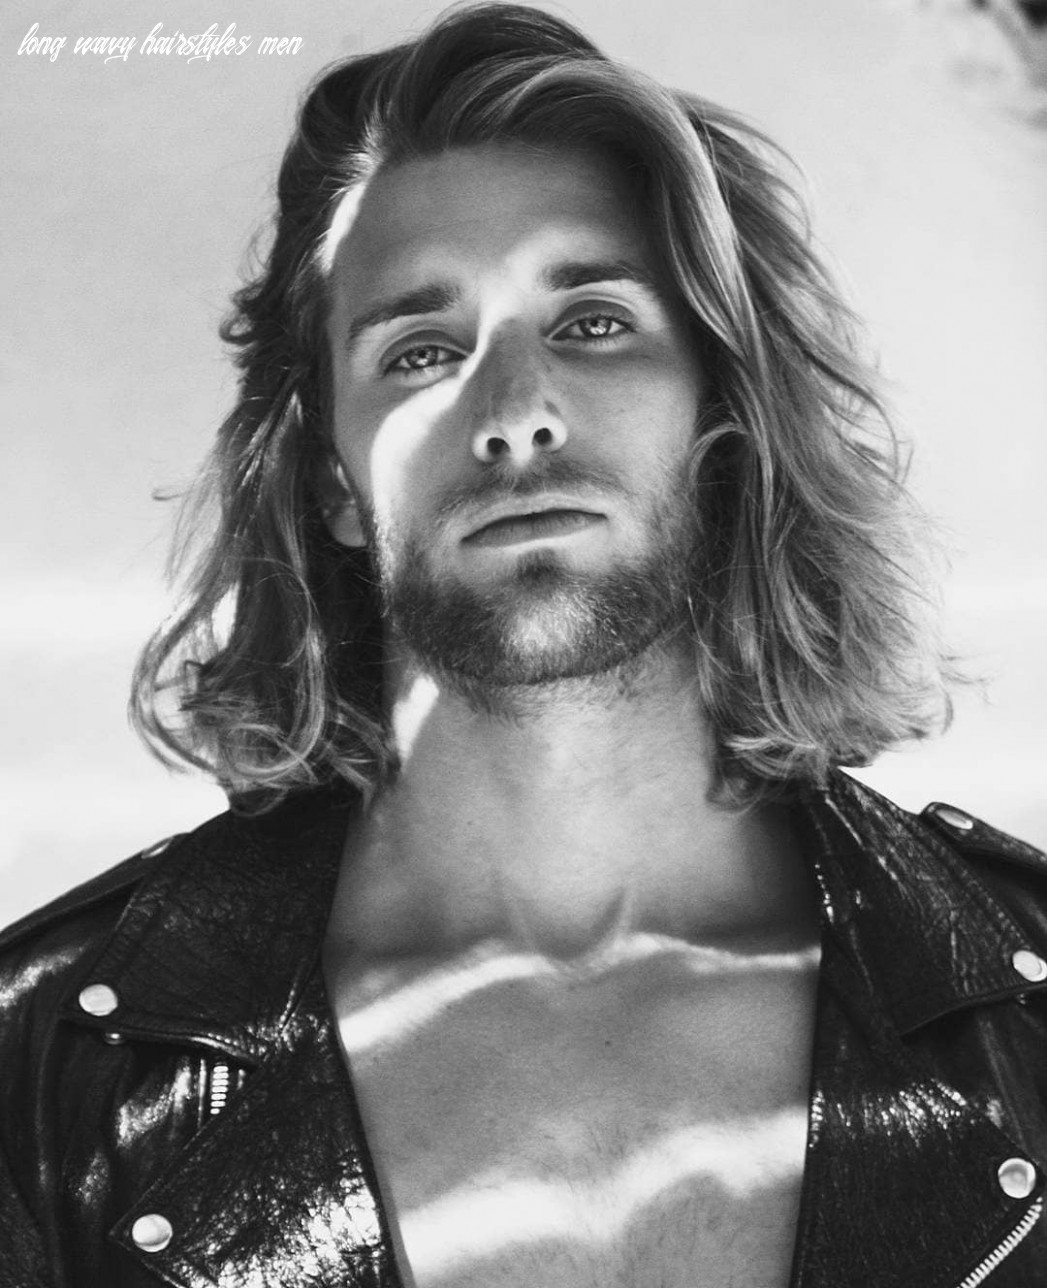 10+ Long Hair Hairstyles + Haircuts For Men (10 Styles)